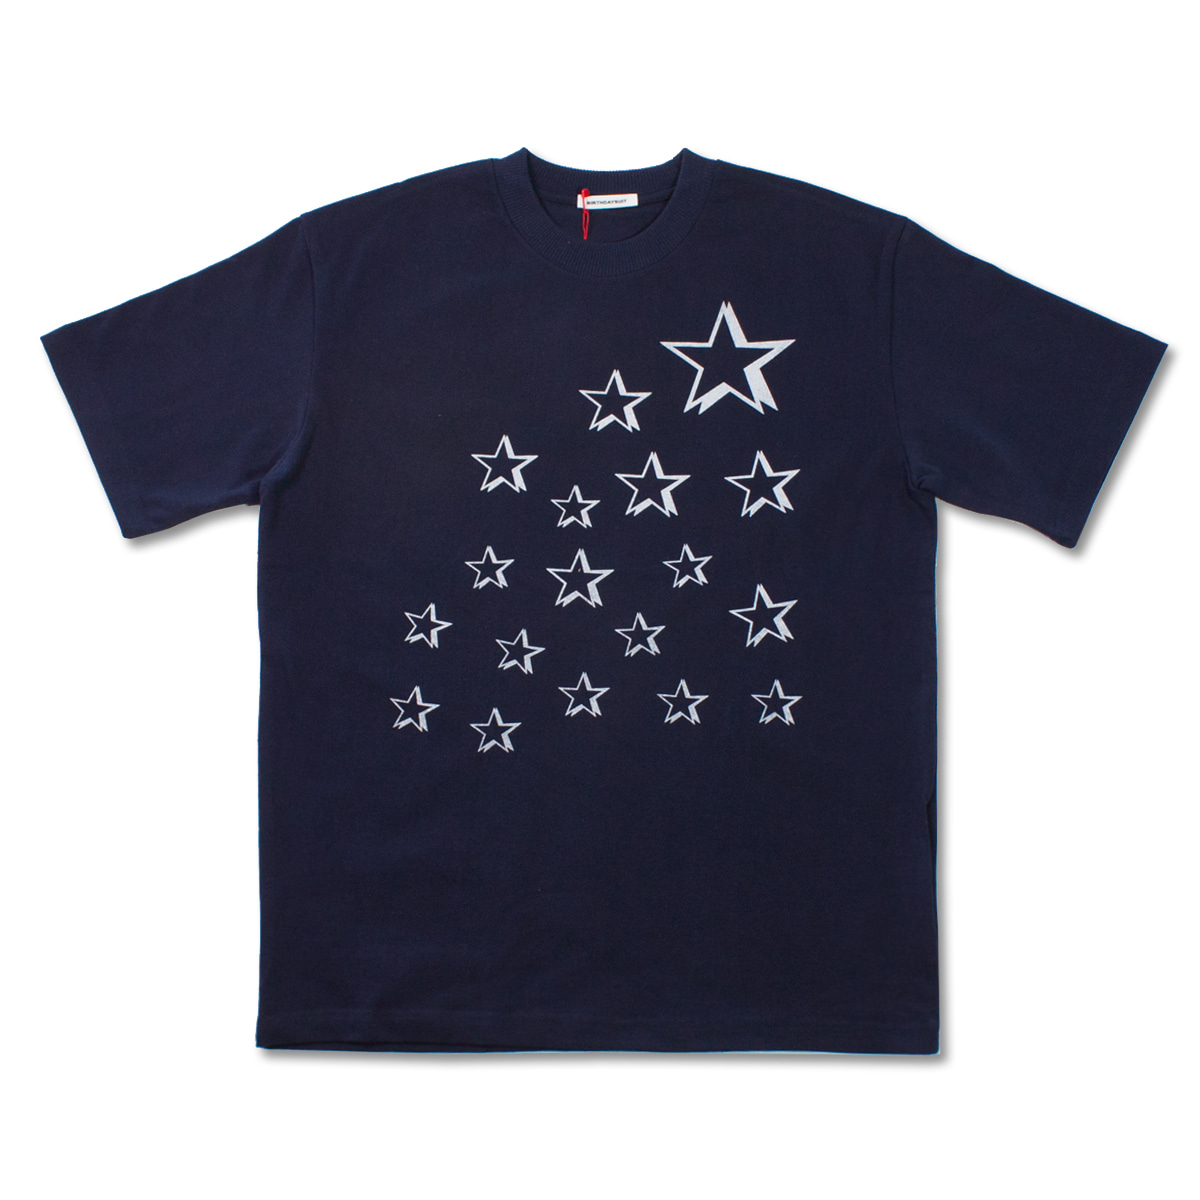 [BIRTHDAYSUIT] STARS T-SHIRT 'NAVY'